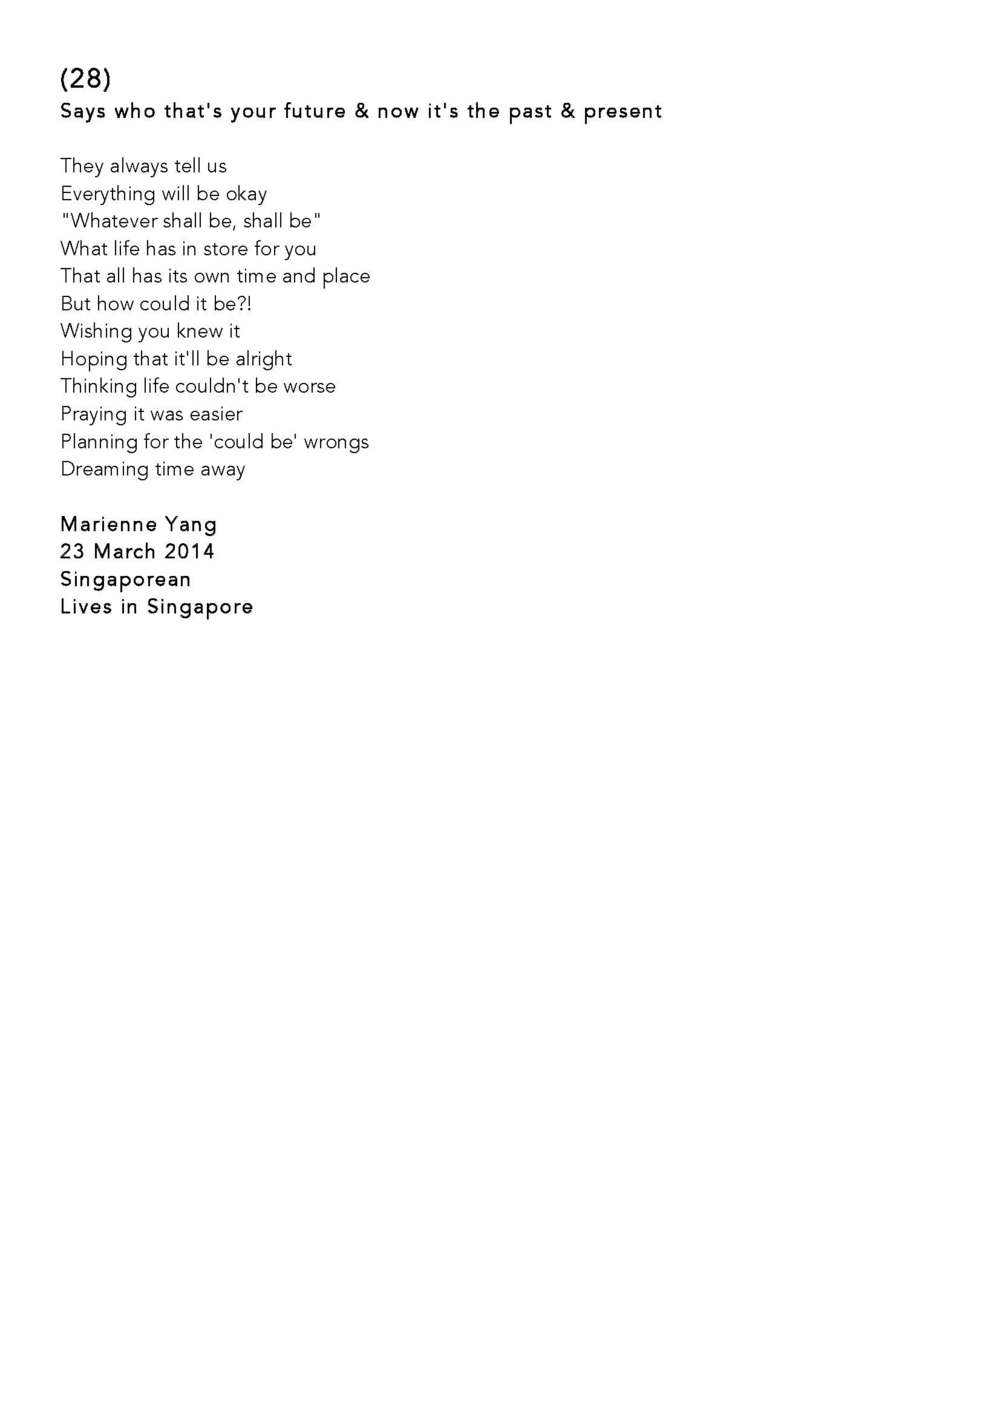 Poetry Collection - Everyone can Poetry_March 2014_Page_28.jpg